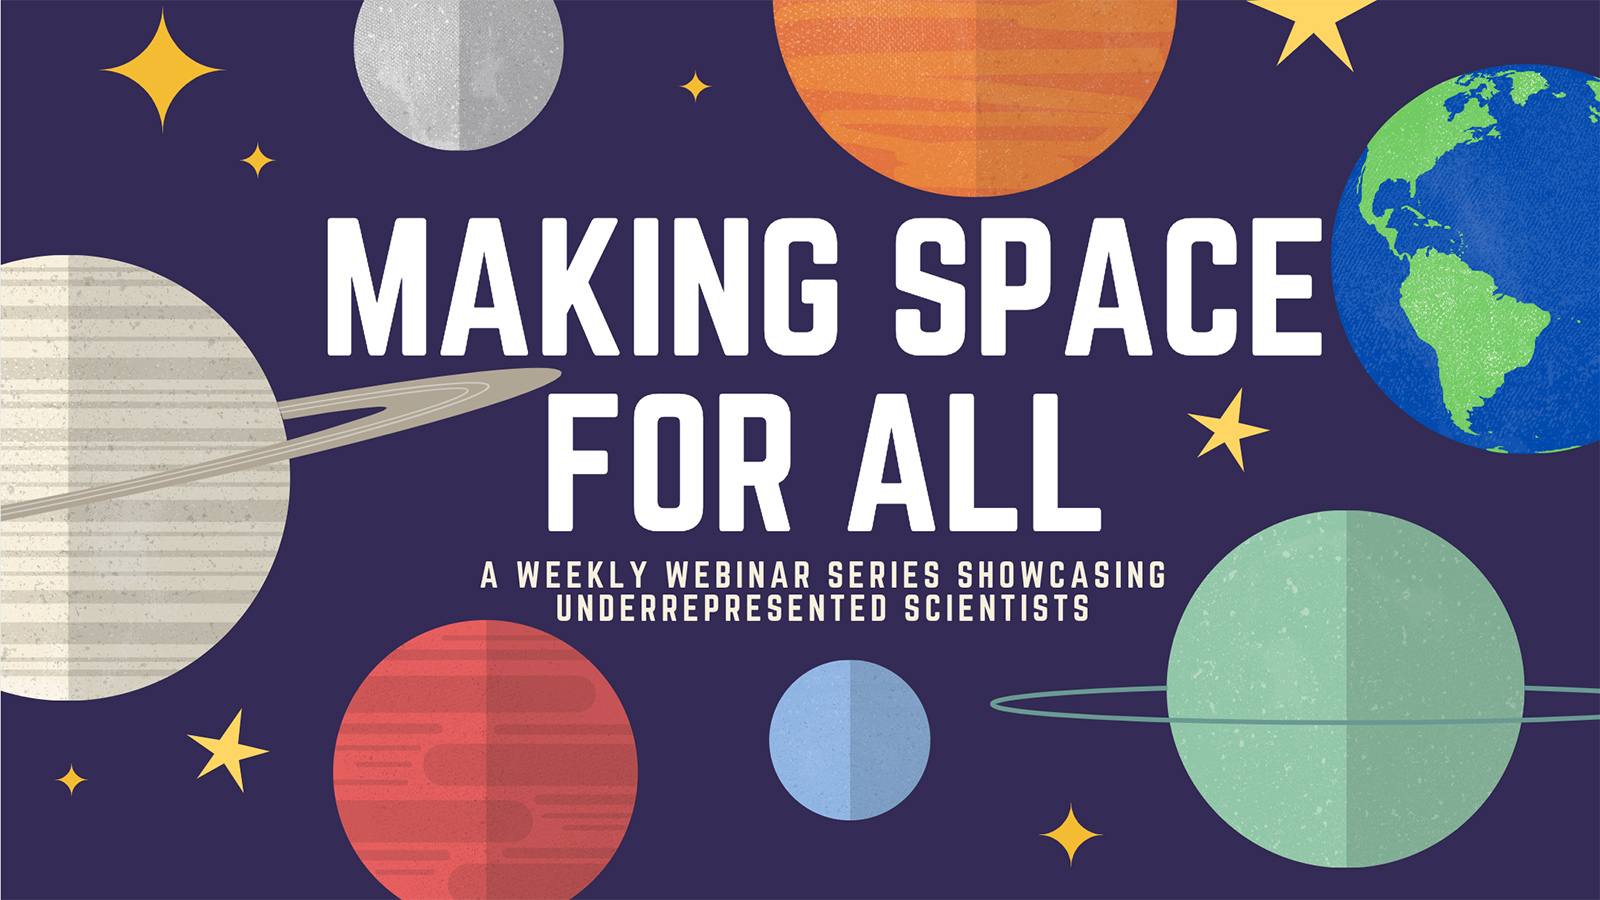 Making Space for All - A weekly webinar series showcasing scientists from underrepresented groups